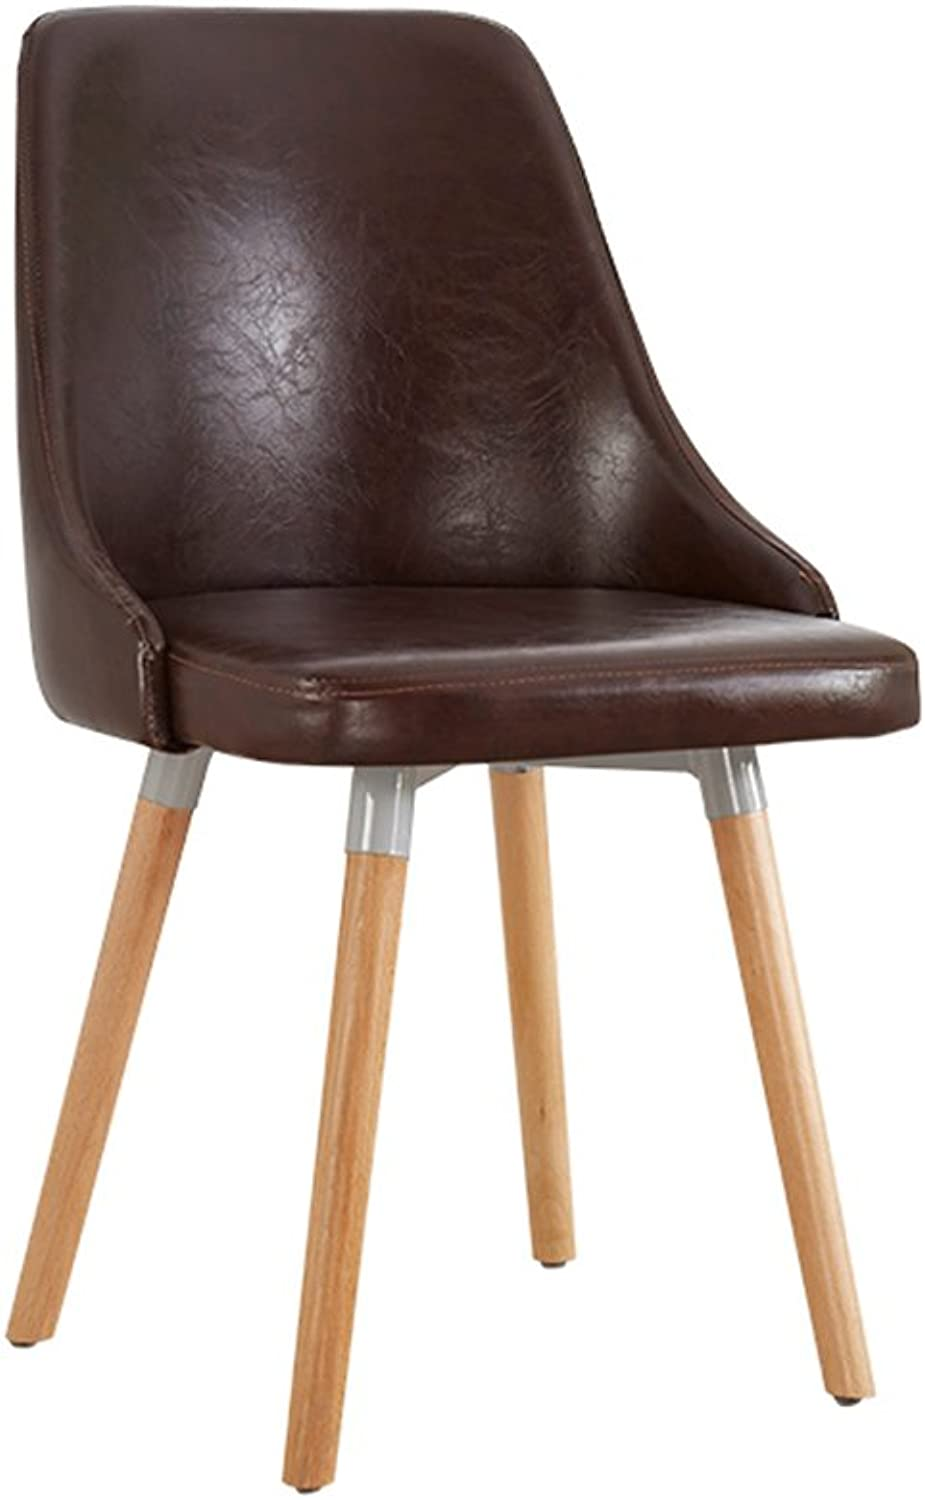 European Chair Modern Simple Study Computer Chair Home Stool Back Adult Dining Chair -by TIANTA (color   3)